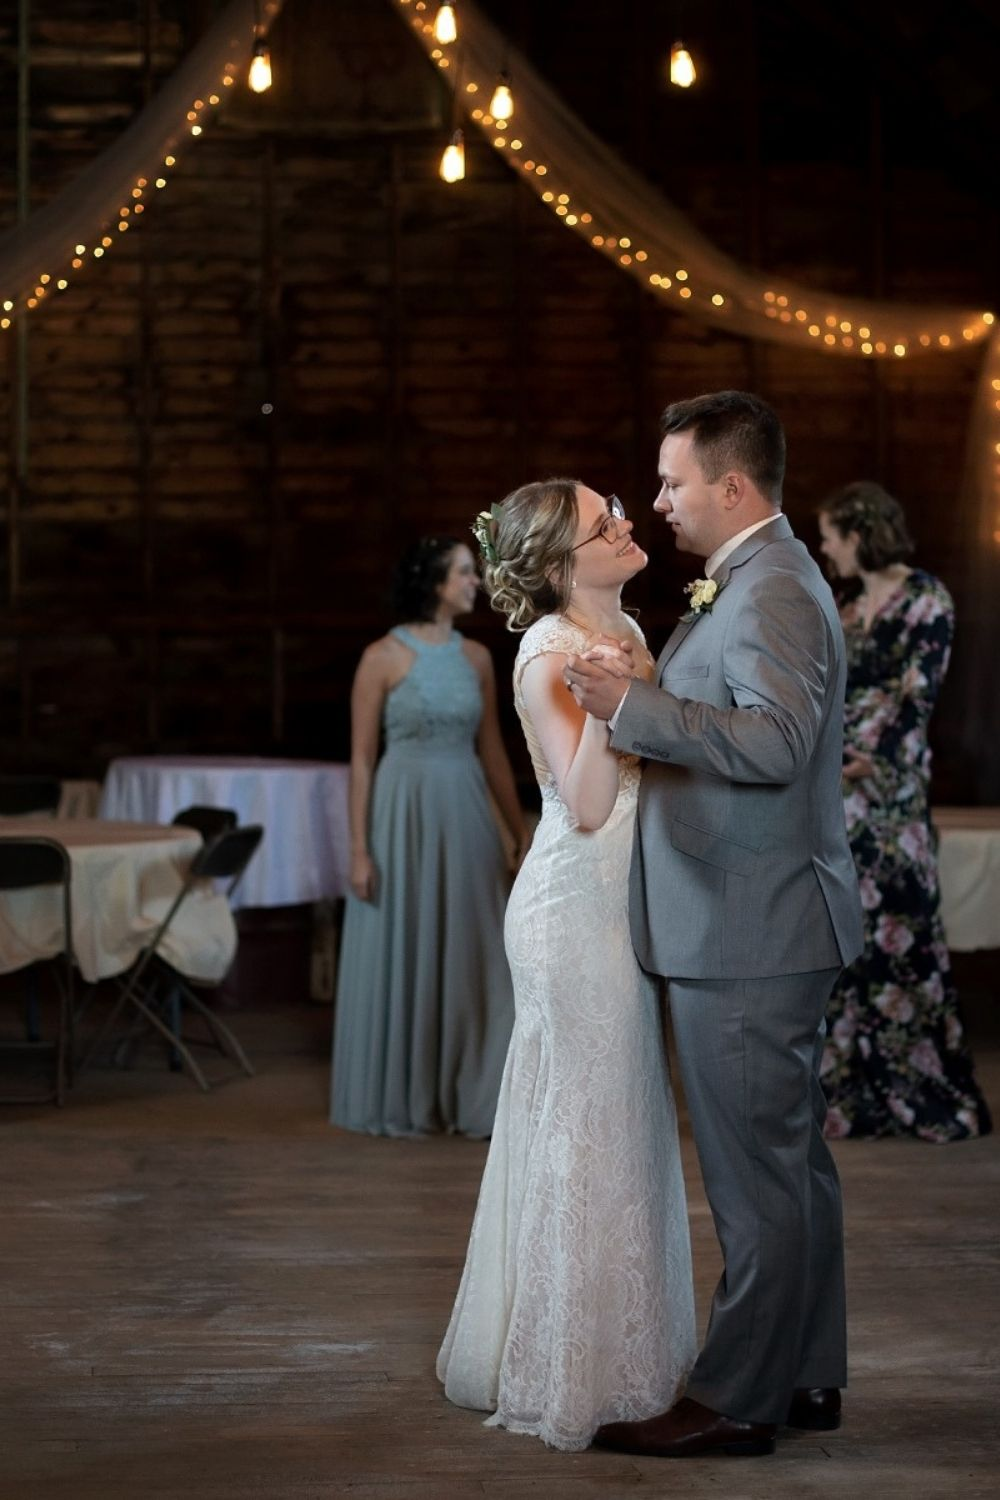 Night wedding reception by Bumble & Vine Photography.